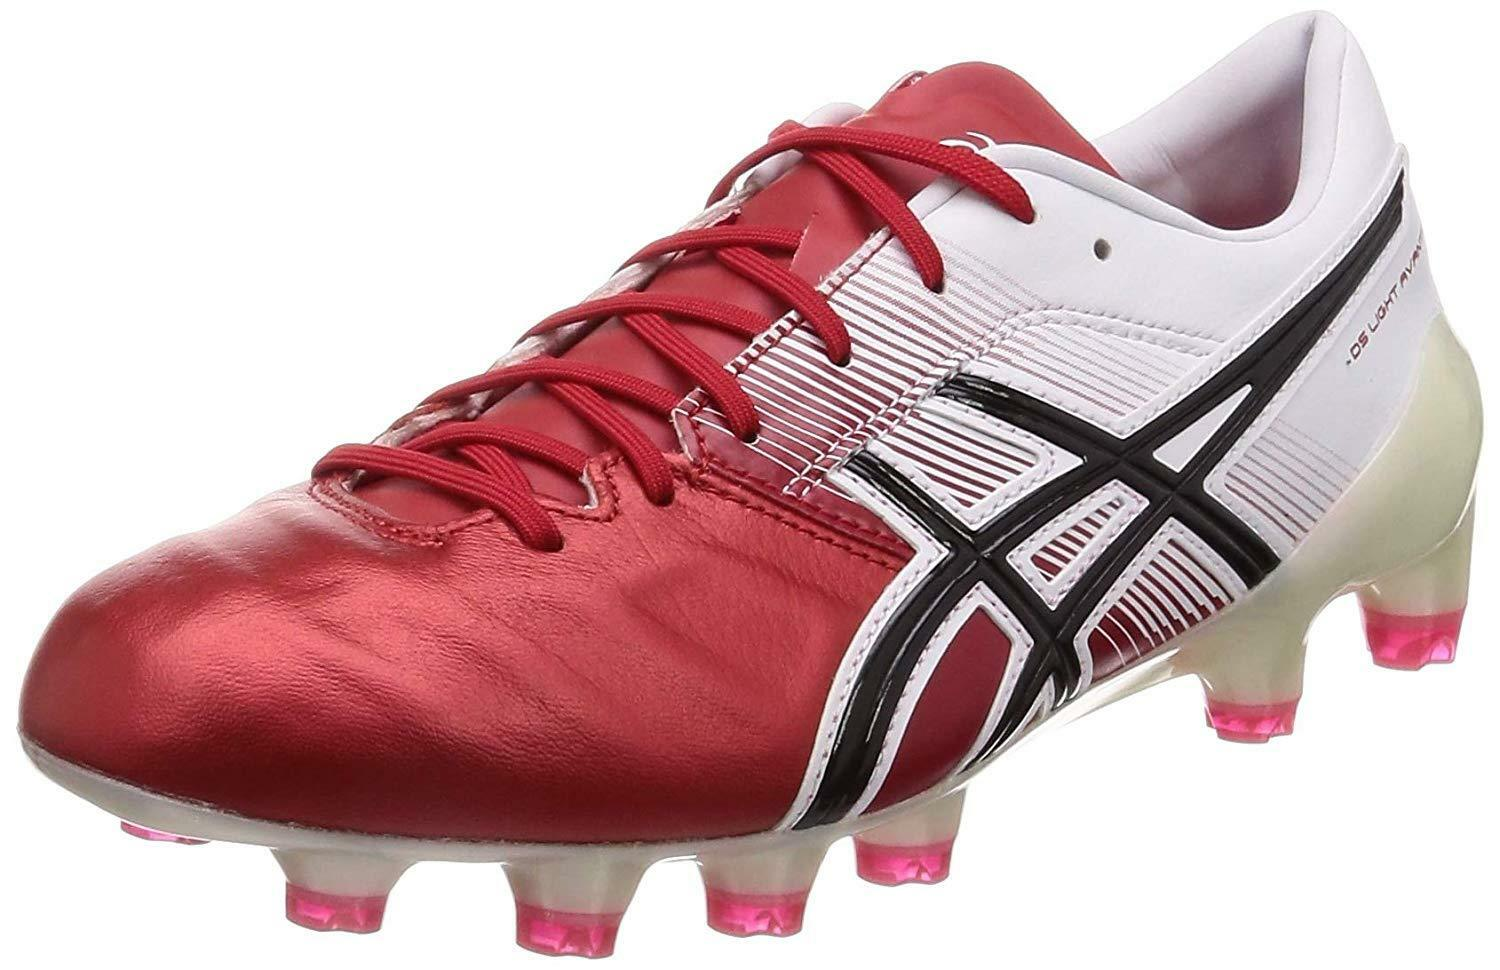 Zapatos de fútbol de Spike Asics DS Light Avante 1101A009 Rojo US10 (28cm)